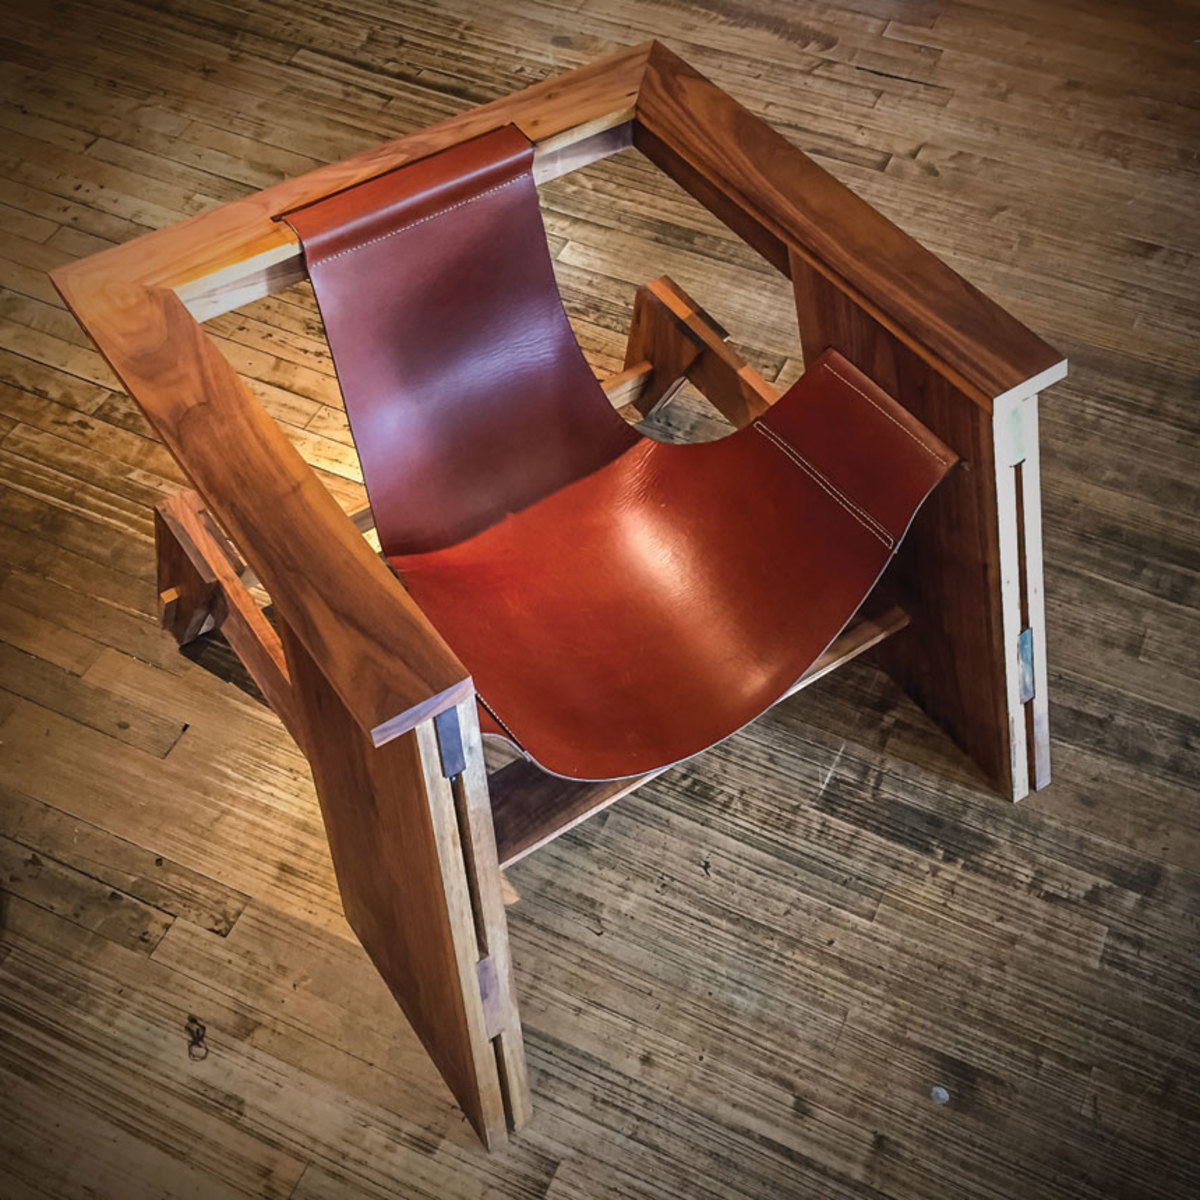 This chair by Matt Edwards won the People's Choice award at Vellum 13 in 2016.